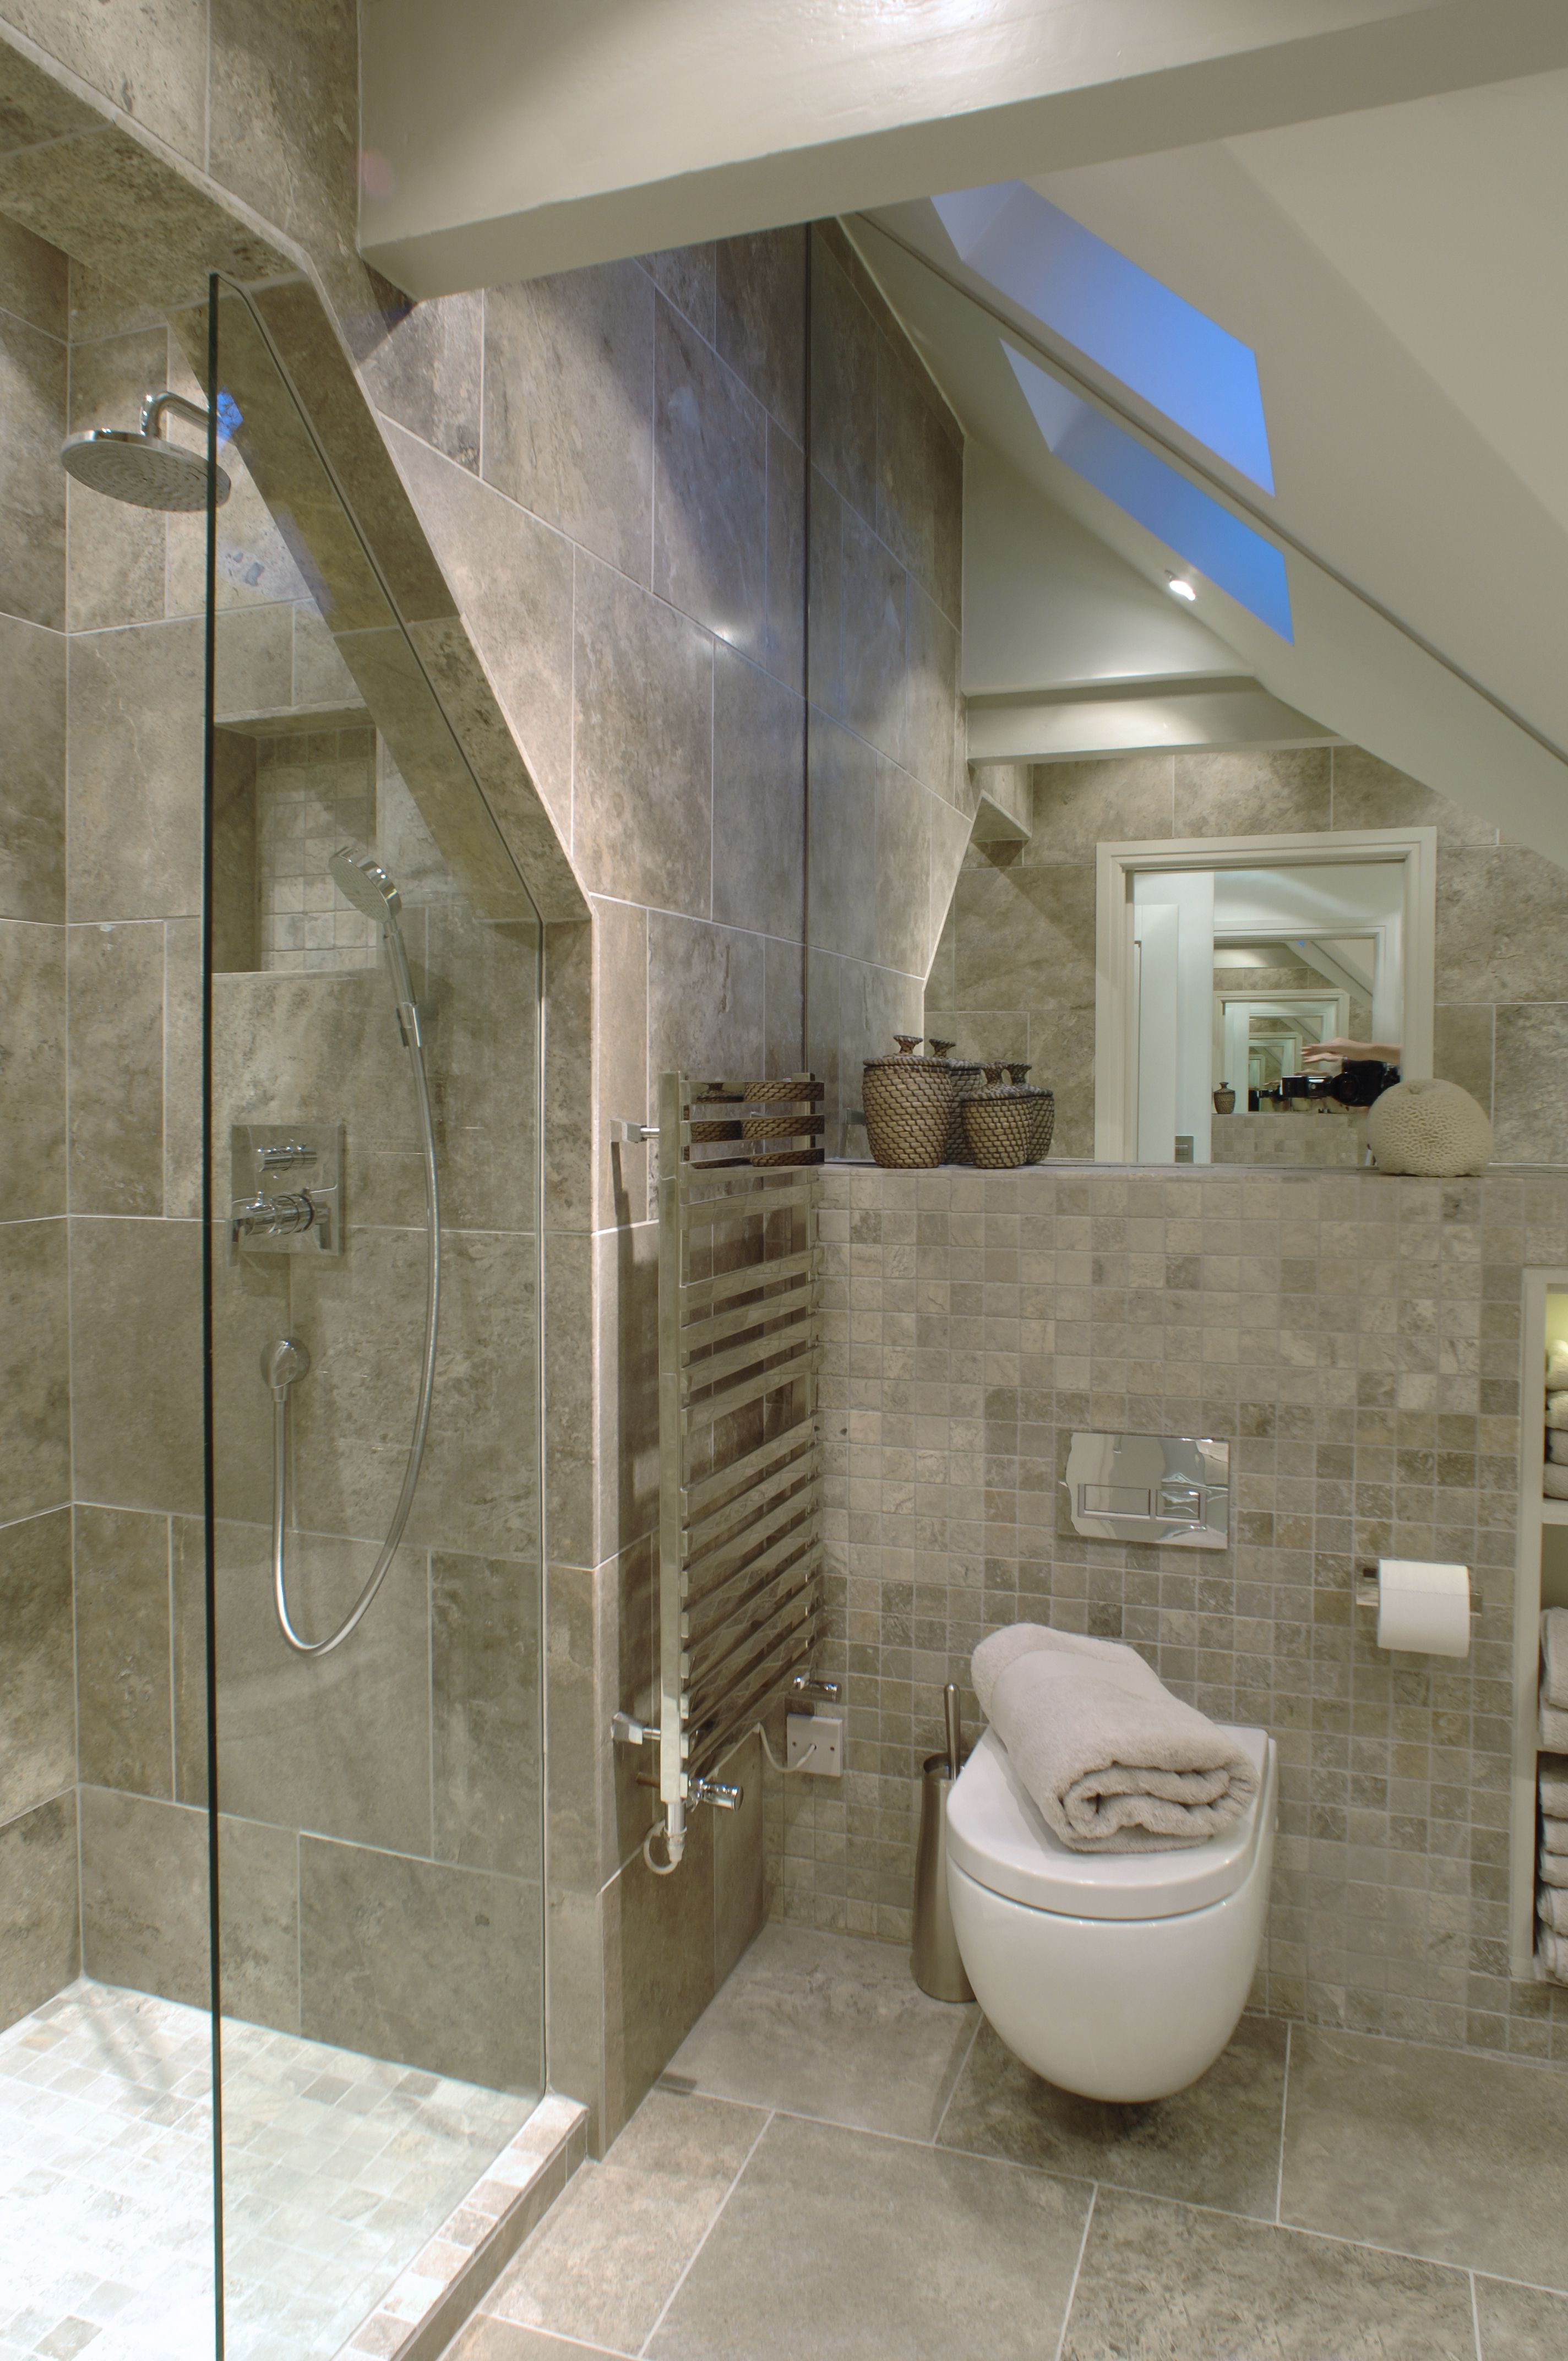 Luxurious shower room in grayscale Narrow seat against far wall